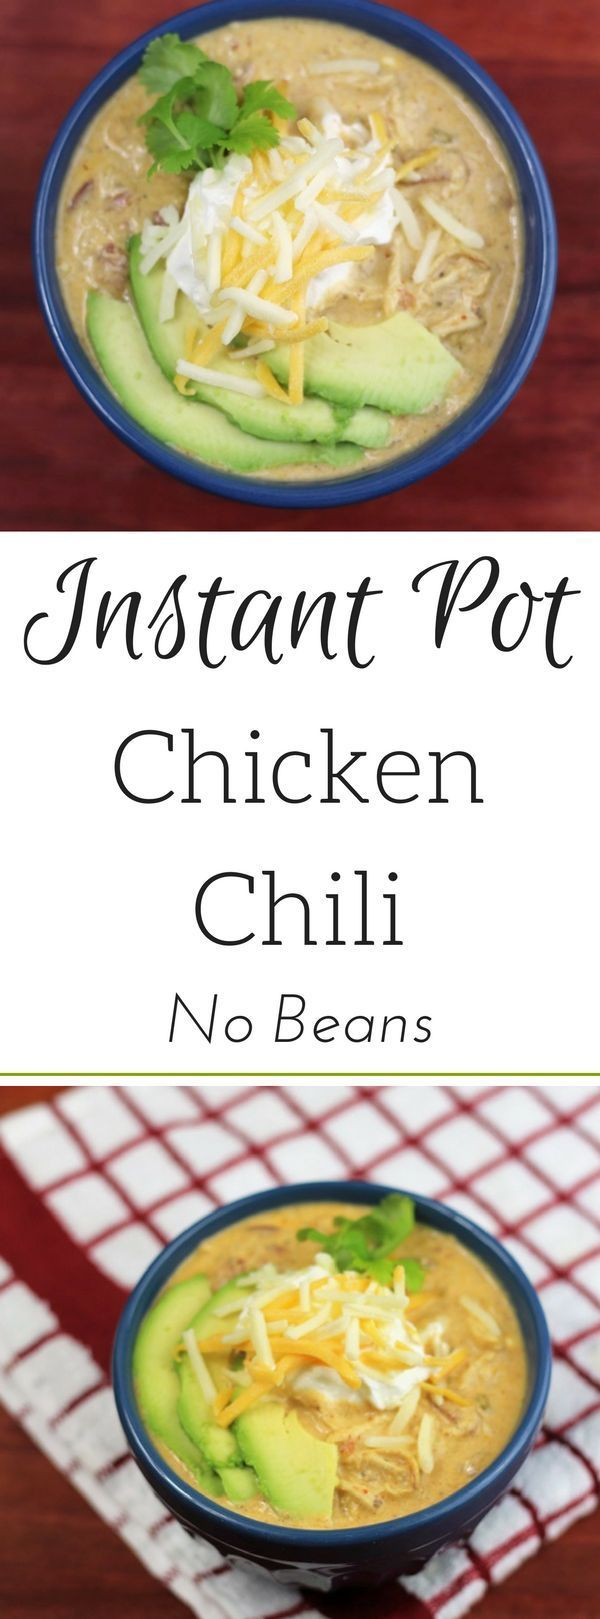 Instant Pot Chicken Chili - no Beans: A delicious Mexican inspired dish that's full of healthy and nutritious ingredients. And with a lack of carbs, it's suitable for low carb and keto diets too.